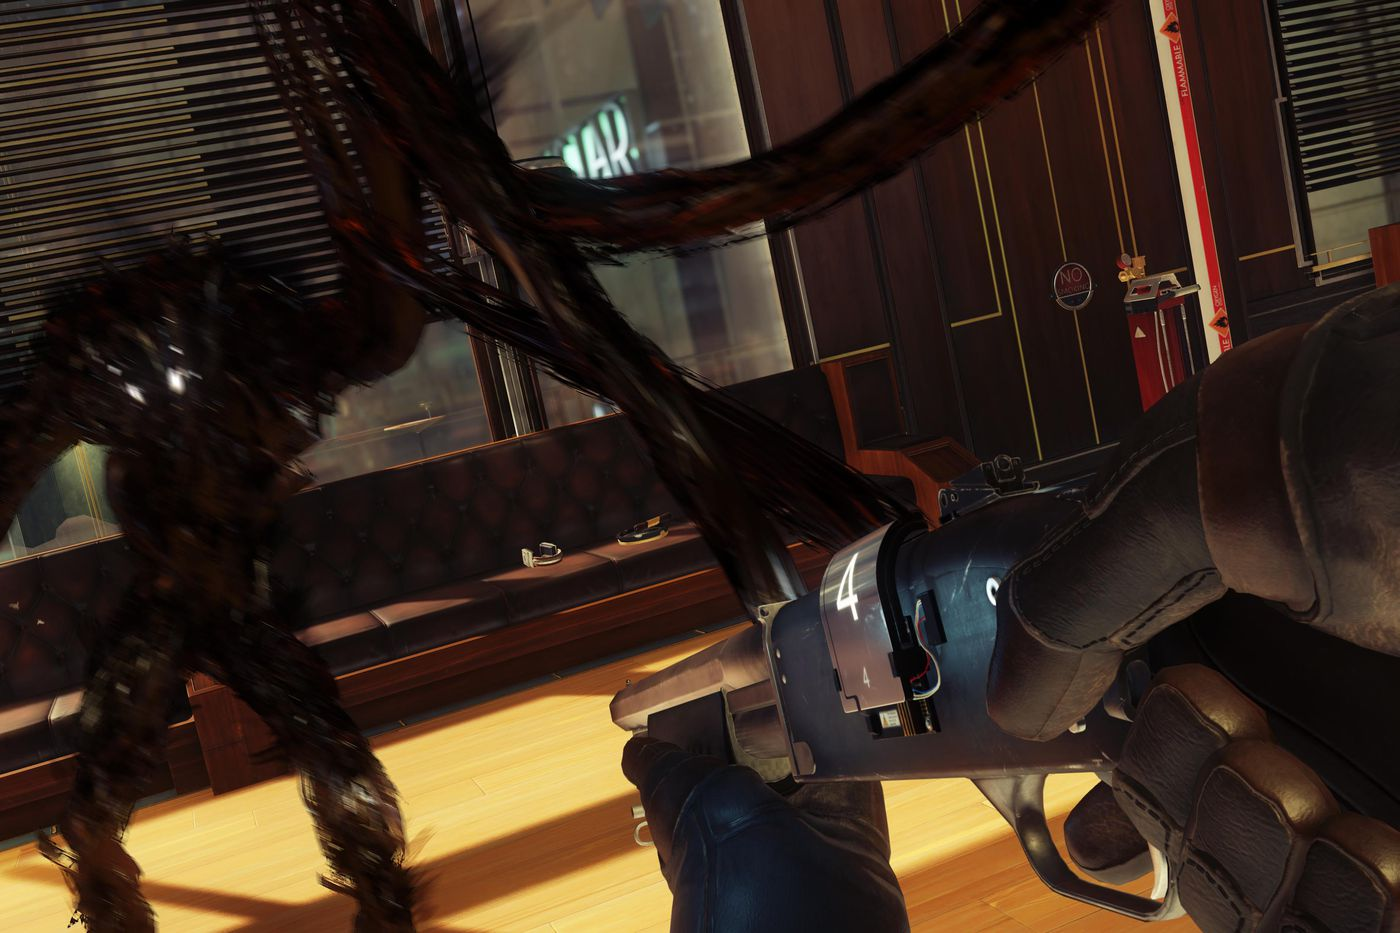 Prey guide: Where to find fabrication plans for ammo